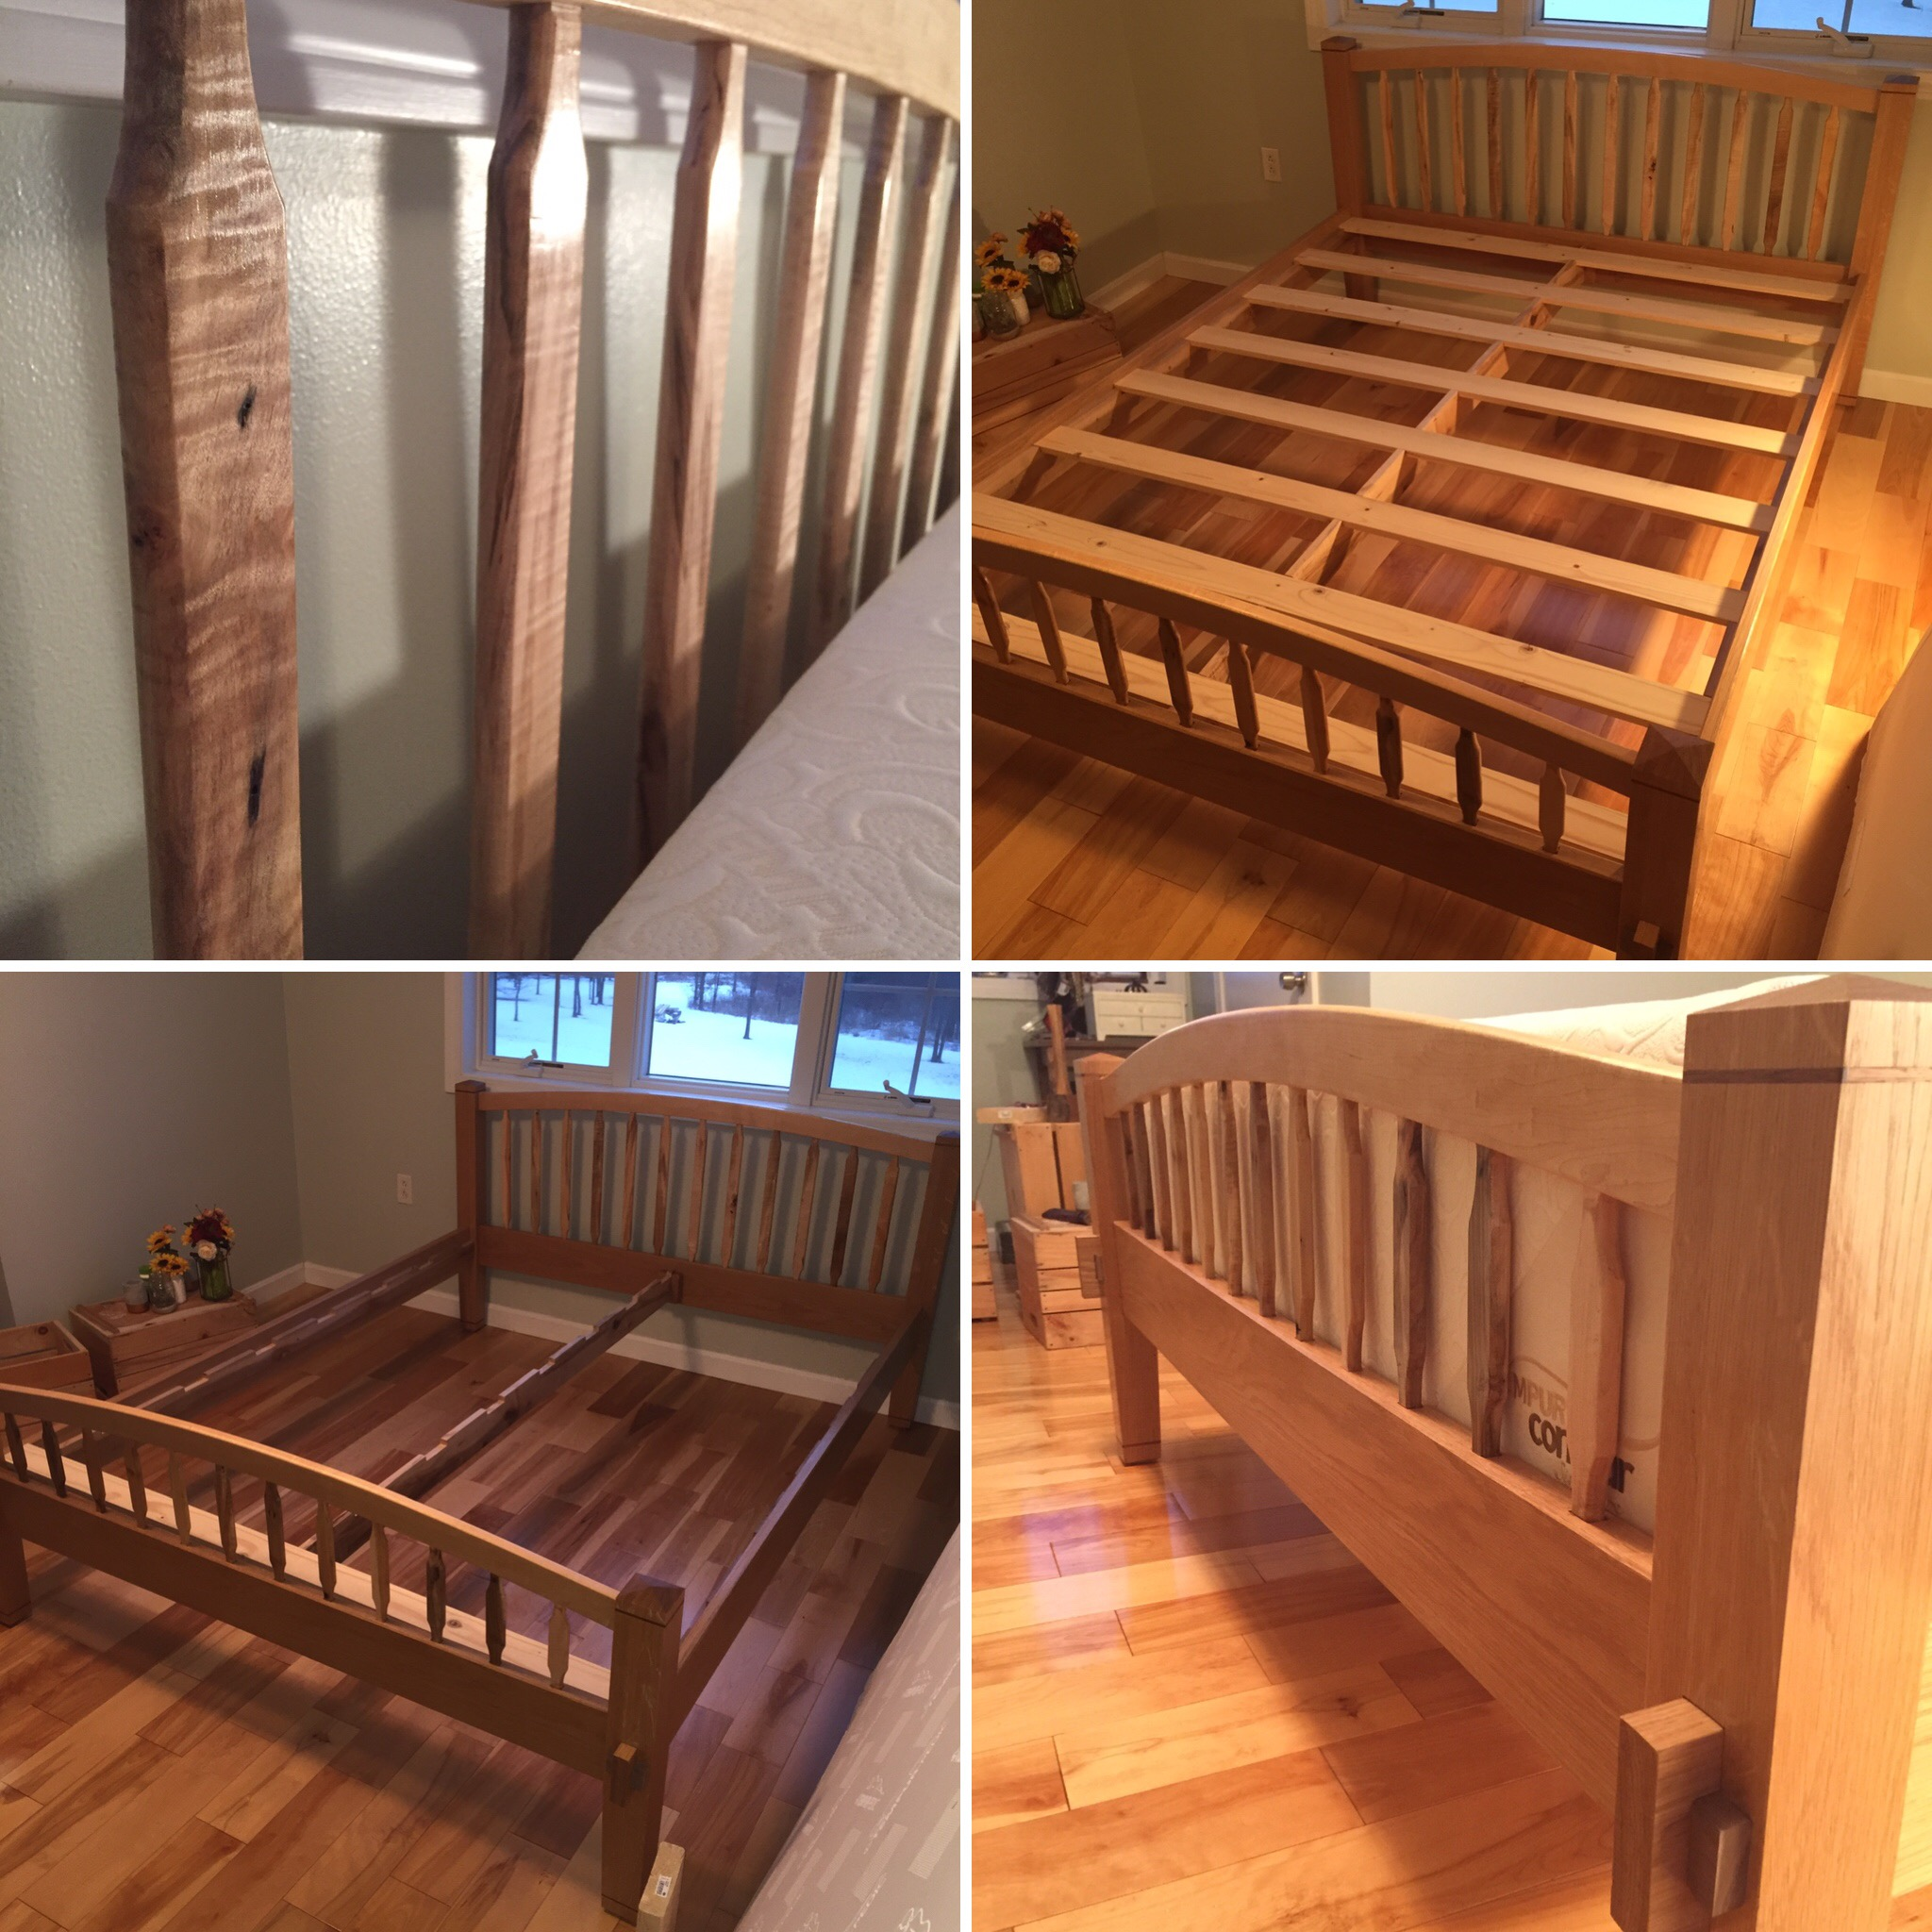 Shaker Style Bed - This shaker-style queen-sized bed is Kyle's largest project to date. The frame is made of white oak with black walnut accents, and the headboard and footboard arches and rails are from spalted ambrosia maple. The bed comes apart for easy moving, however not a single steel component was used. All joinery uses traditional methods suched as mortise and tenons.